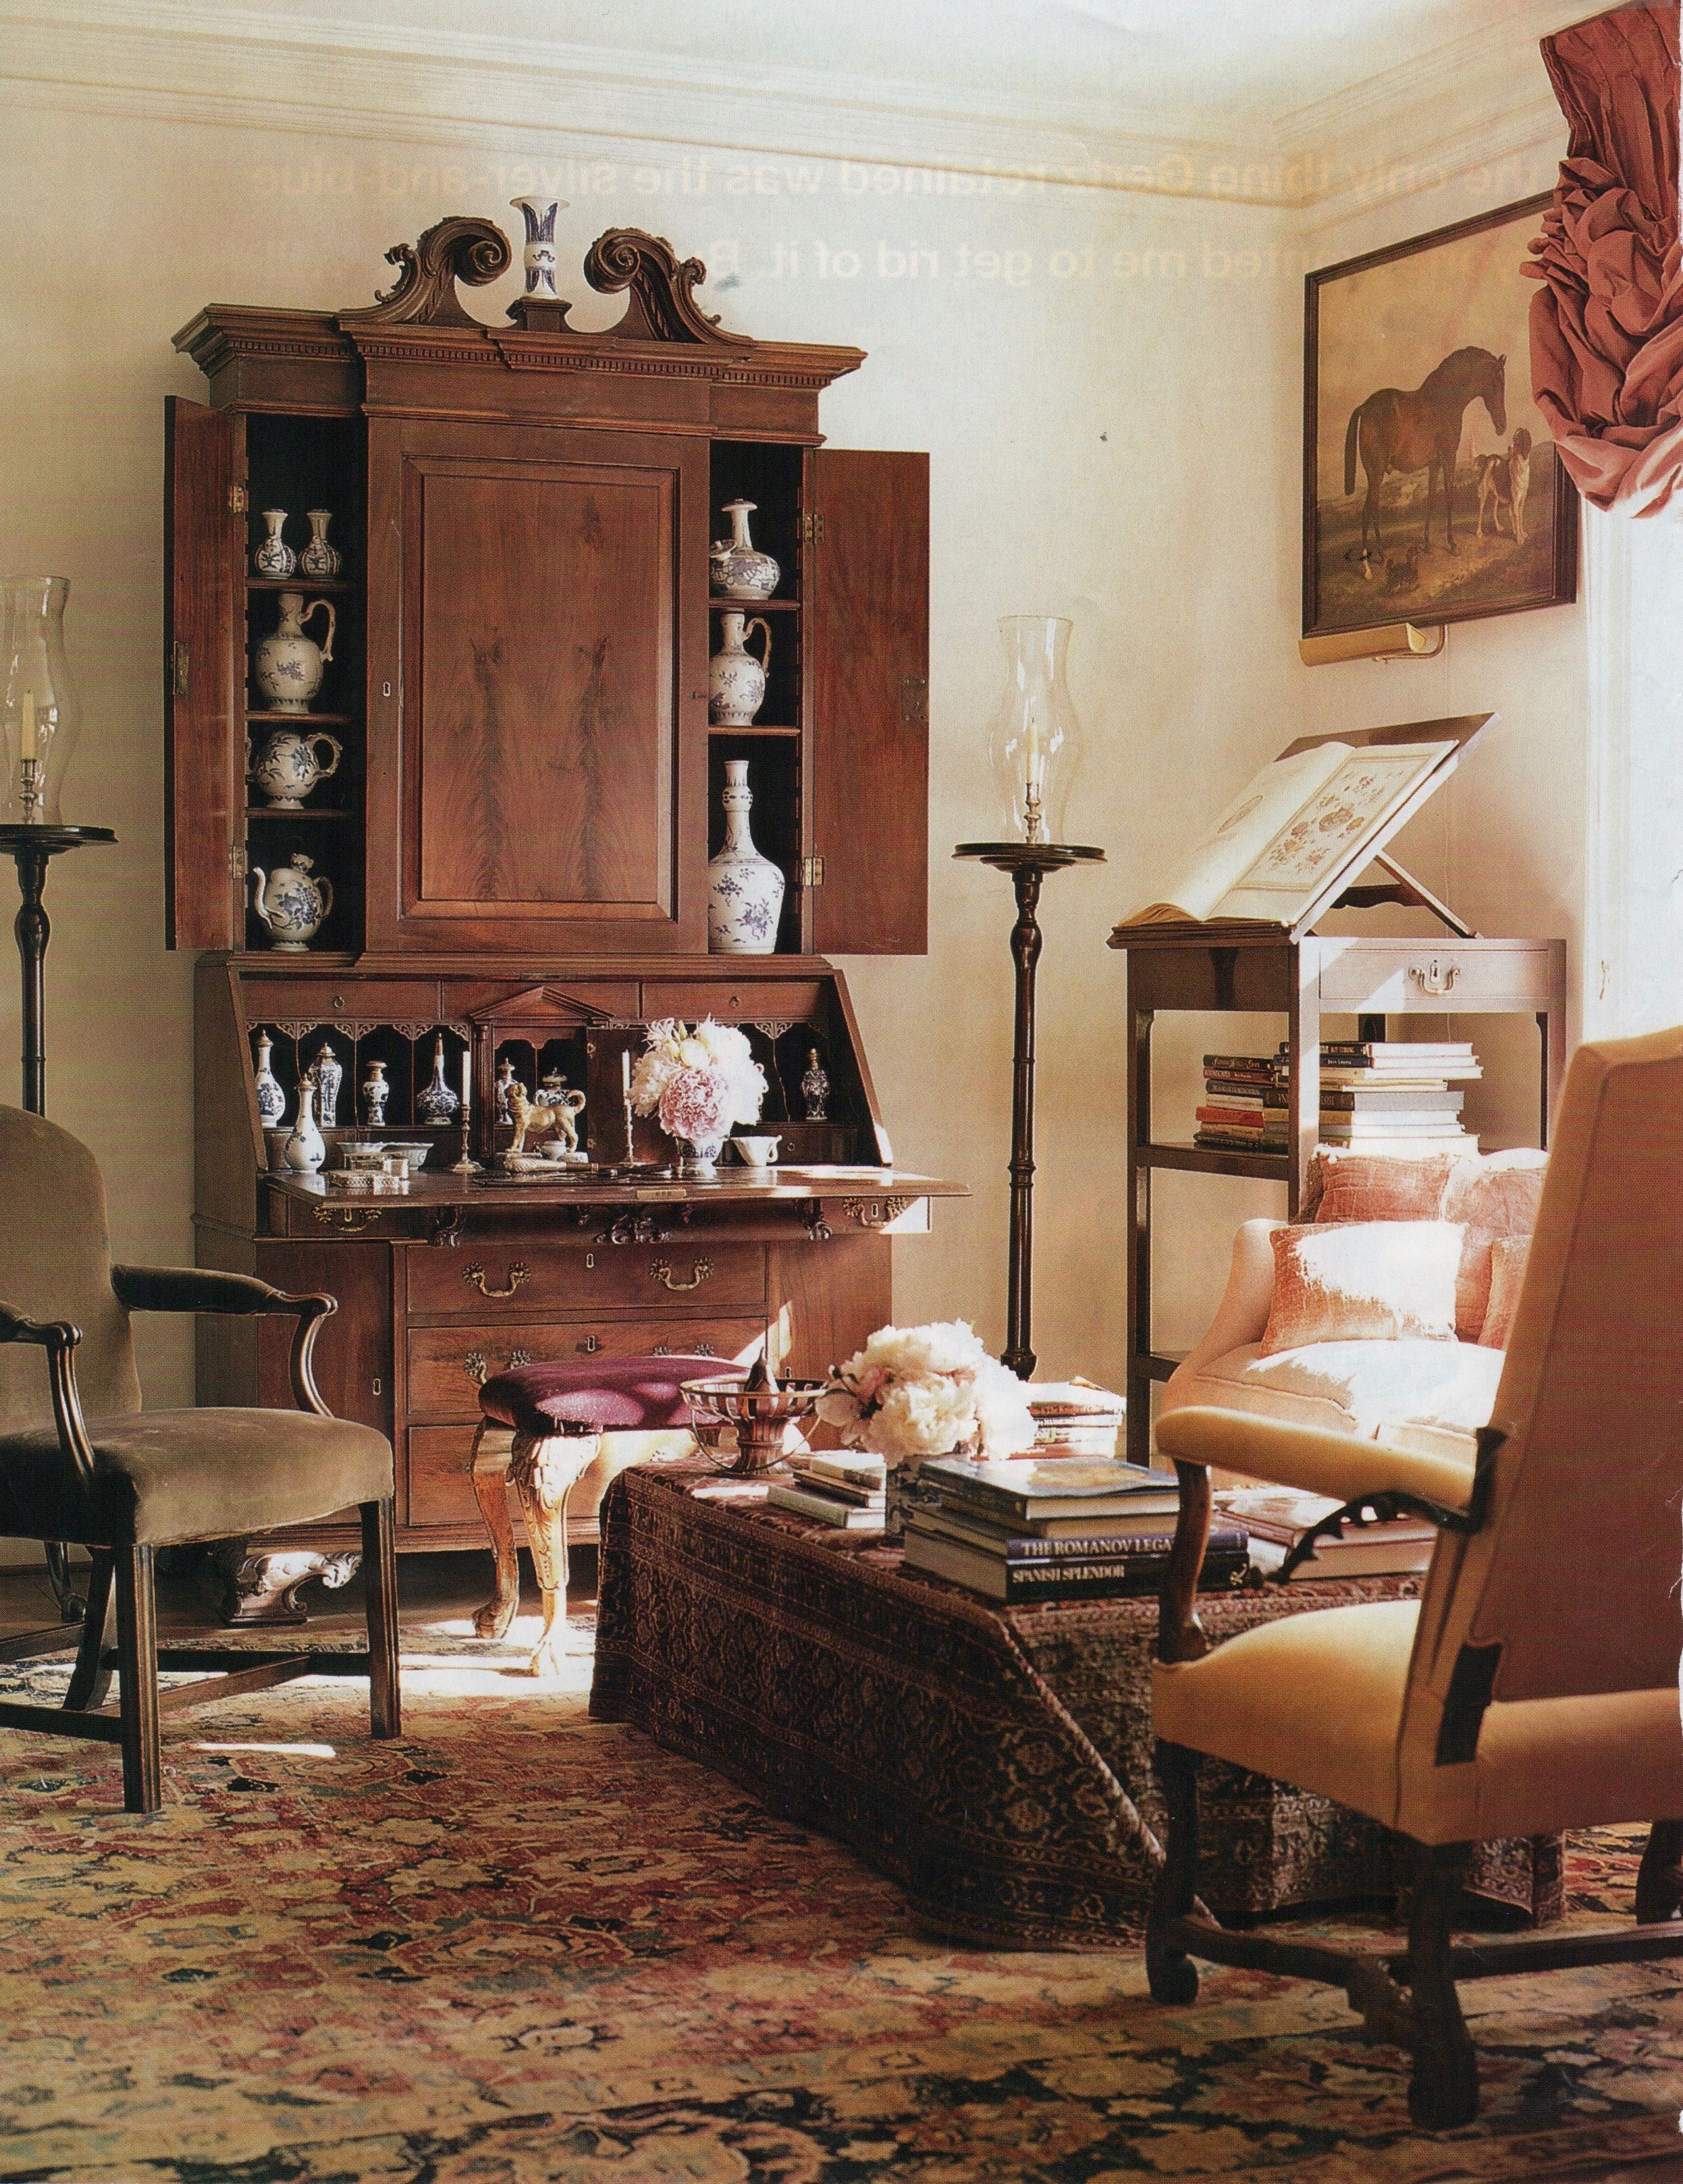 Axel vervoordt dallas home of betty gertz southern accents for Axel vervoordt furniture